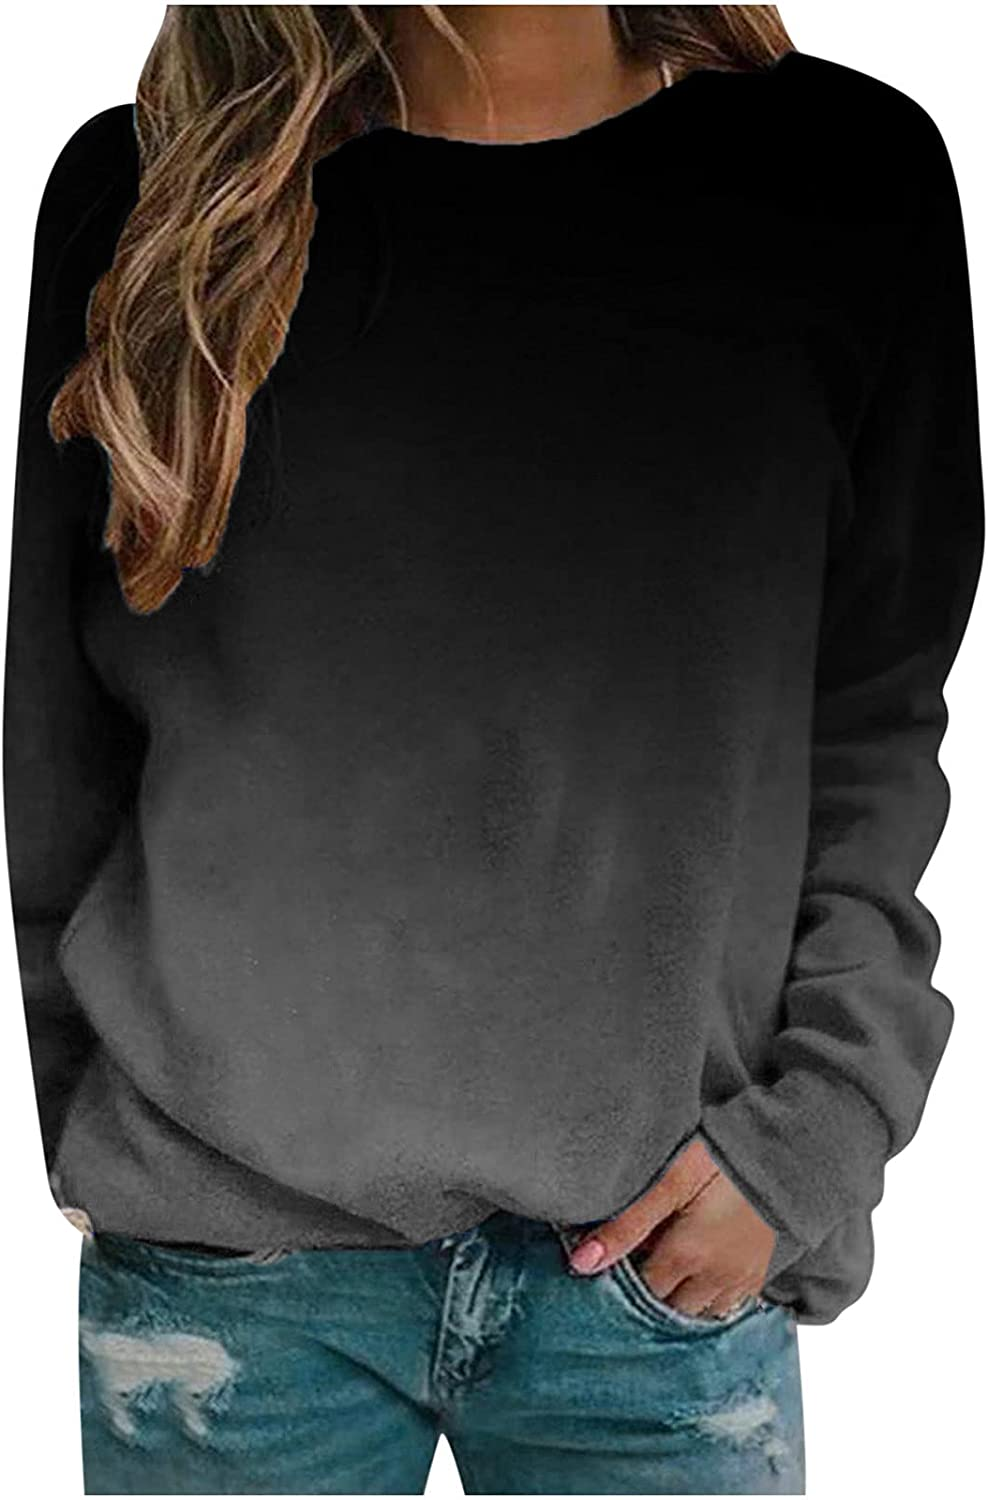 TIMIFIS Long Sleeve Tops for Women Casual O Neck Shirts Loose Fit Blouses Fashion Gradient Color Sweatshirts